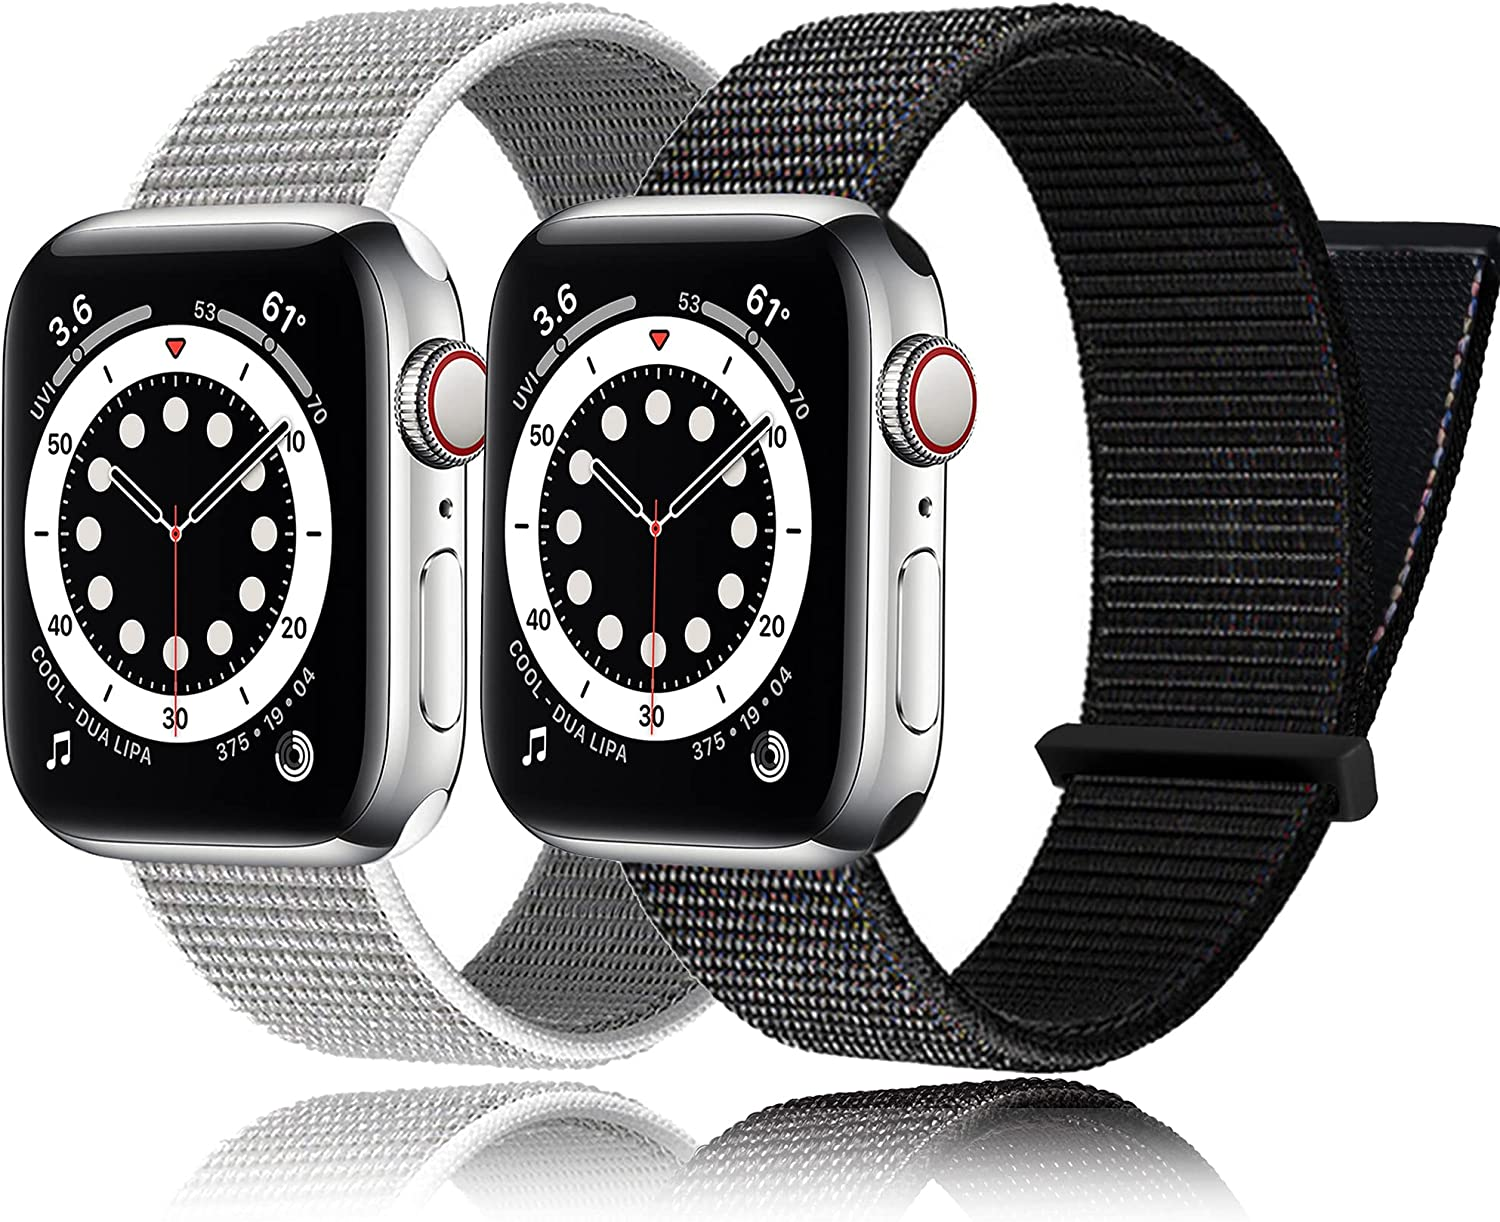 2Pack PROATL Adjustable Nylon Sport Loop Band Compatible with Apple Watch Band 38mm 40mm 42mm 44mm, Women Men Braided Weave Replacement Strap for iWatch Series 6 5 4 3 2 1 SE